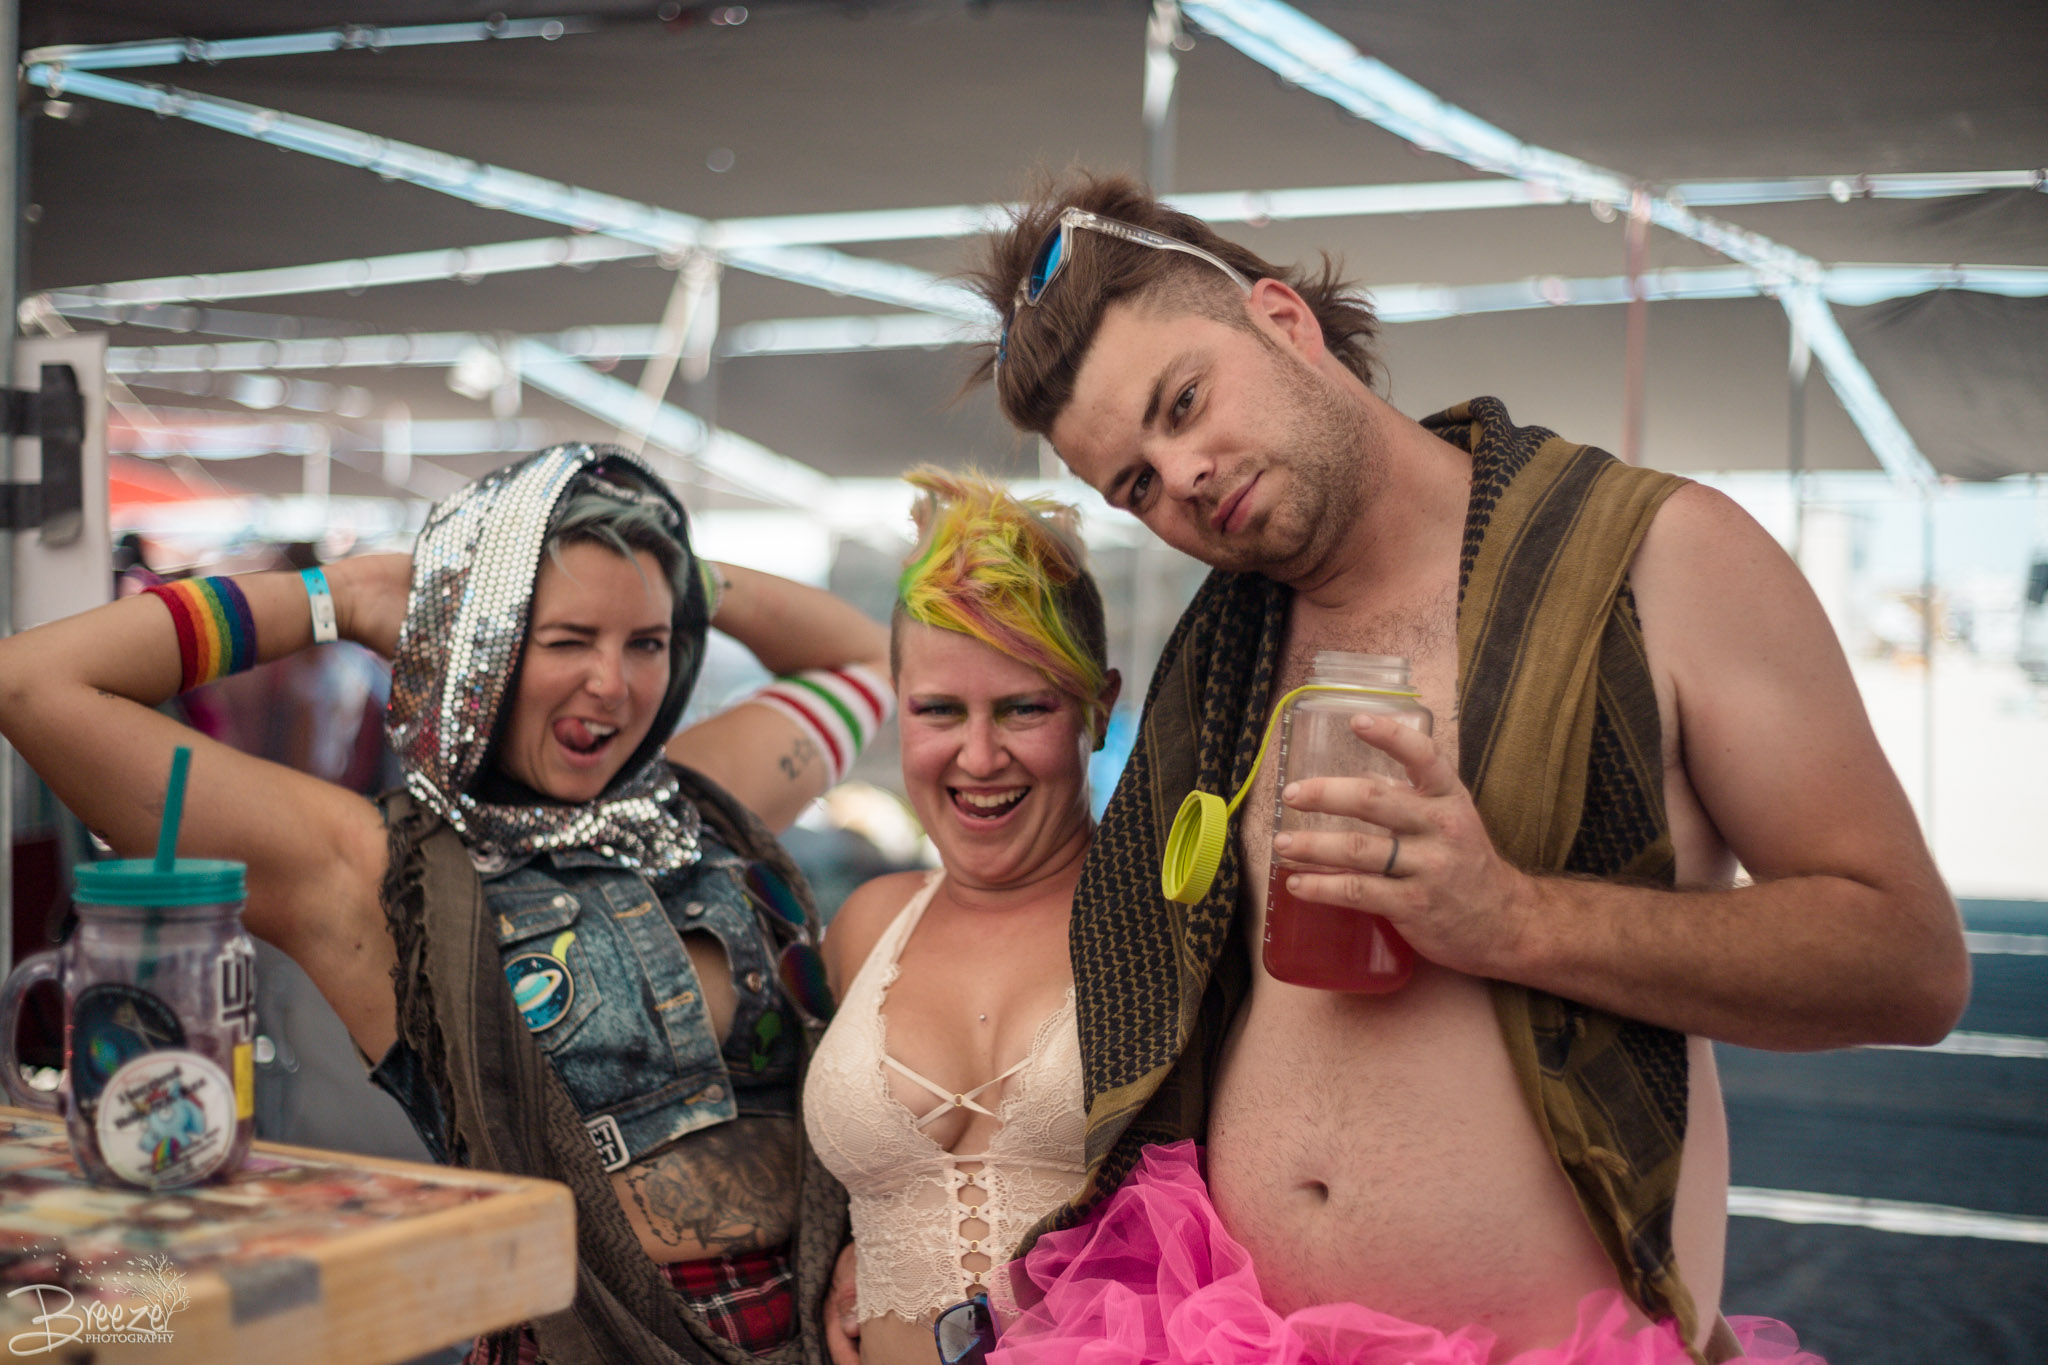 Brie'Ana Breeze Photography & Media - Burning Man 2018-3293.jpg